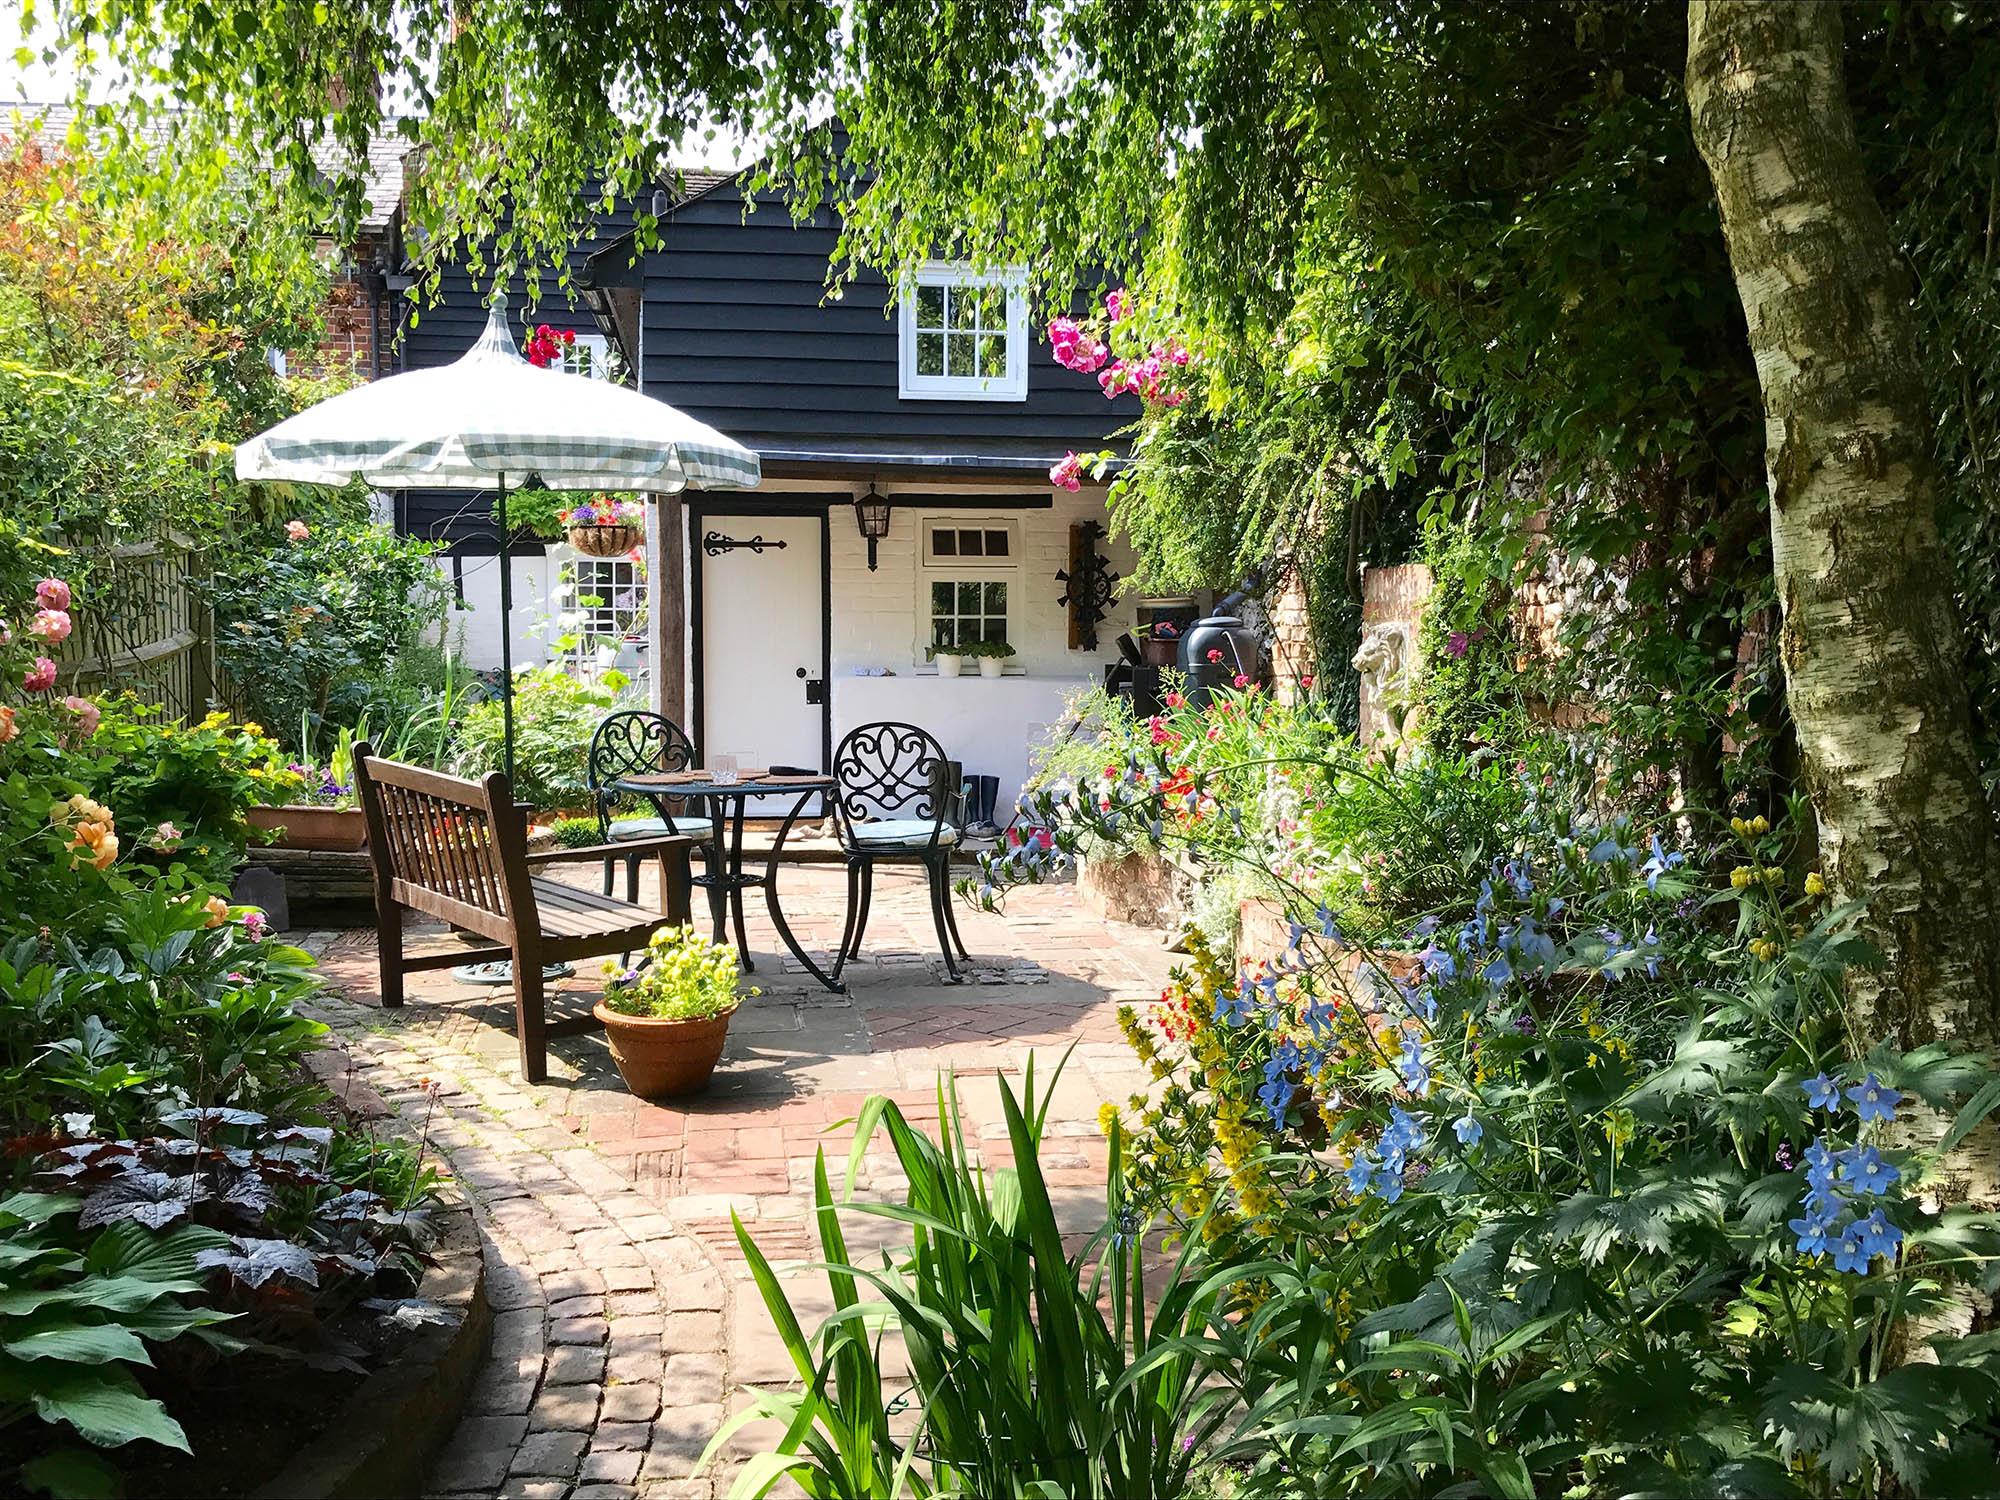 An English cottage garden and patio area